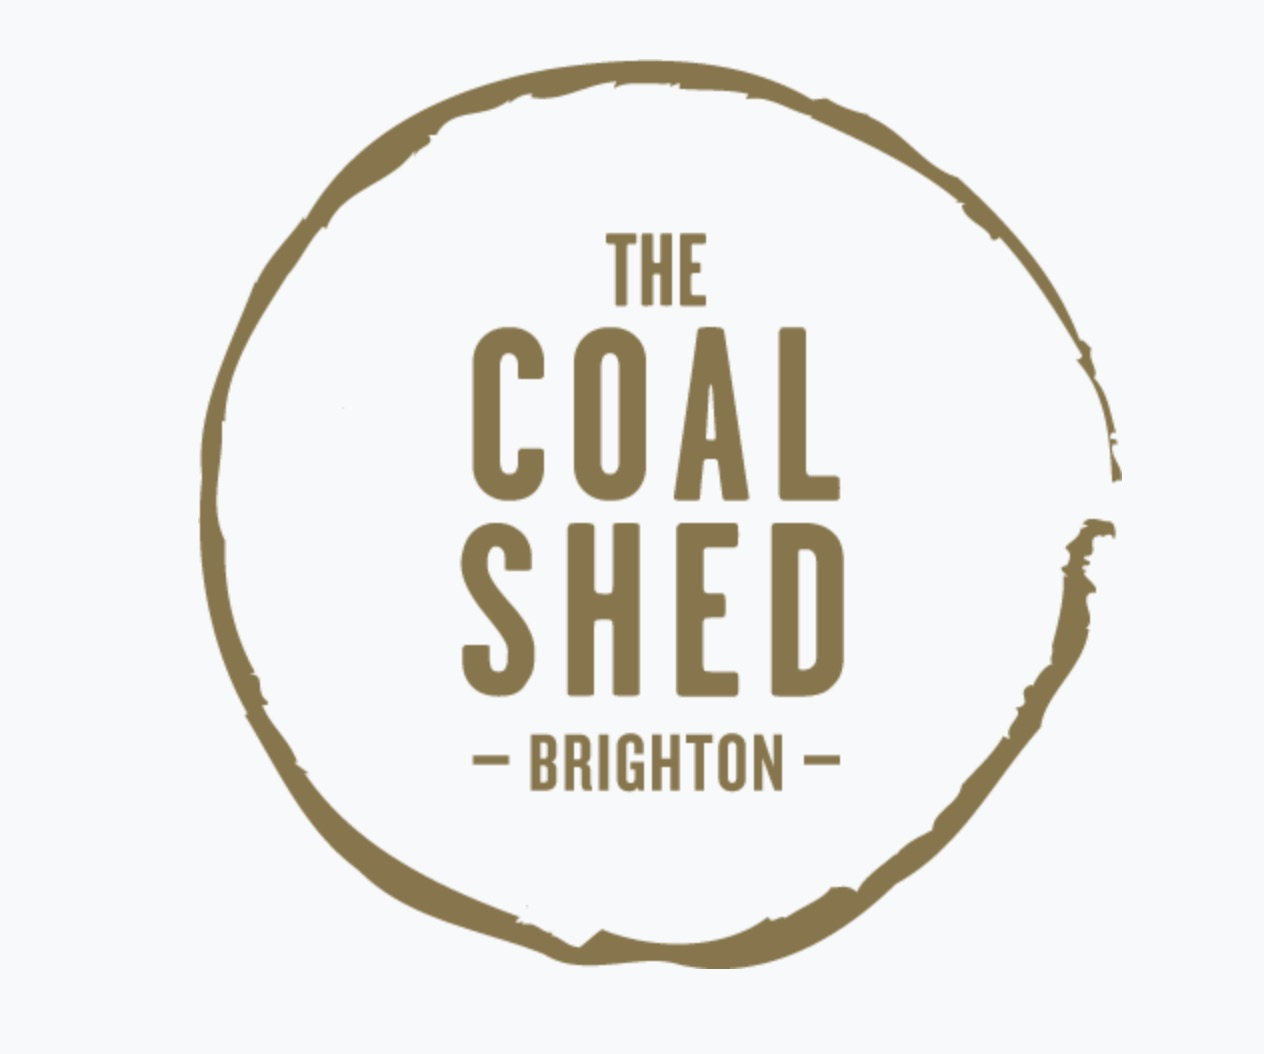 The Coal Shed – Brighton logo